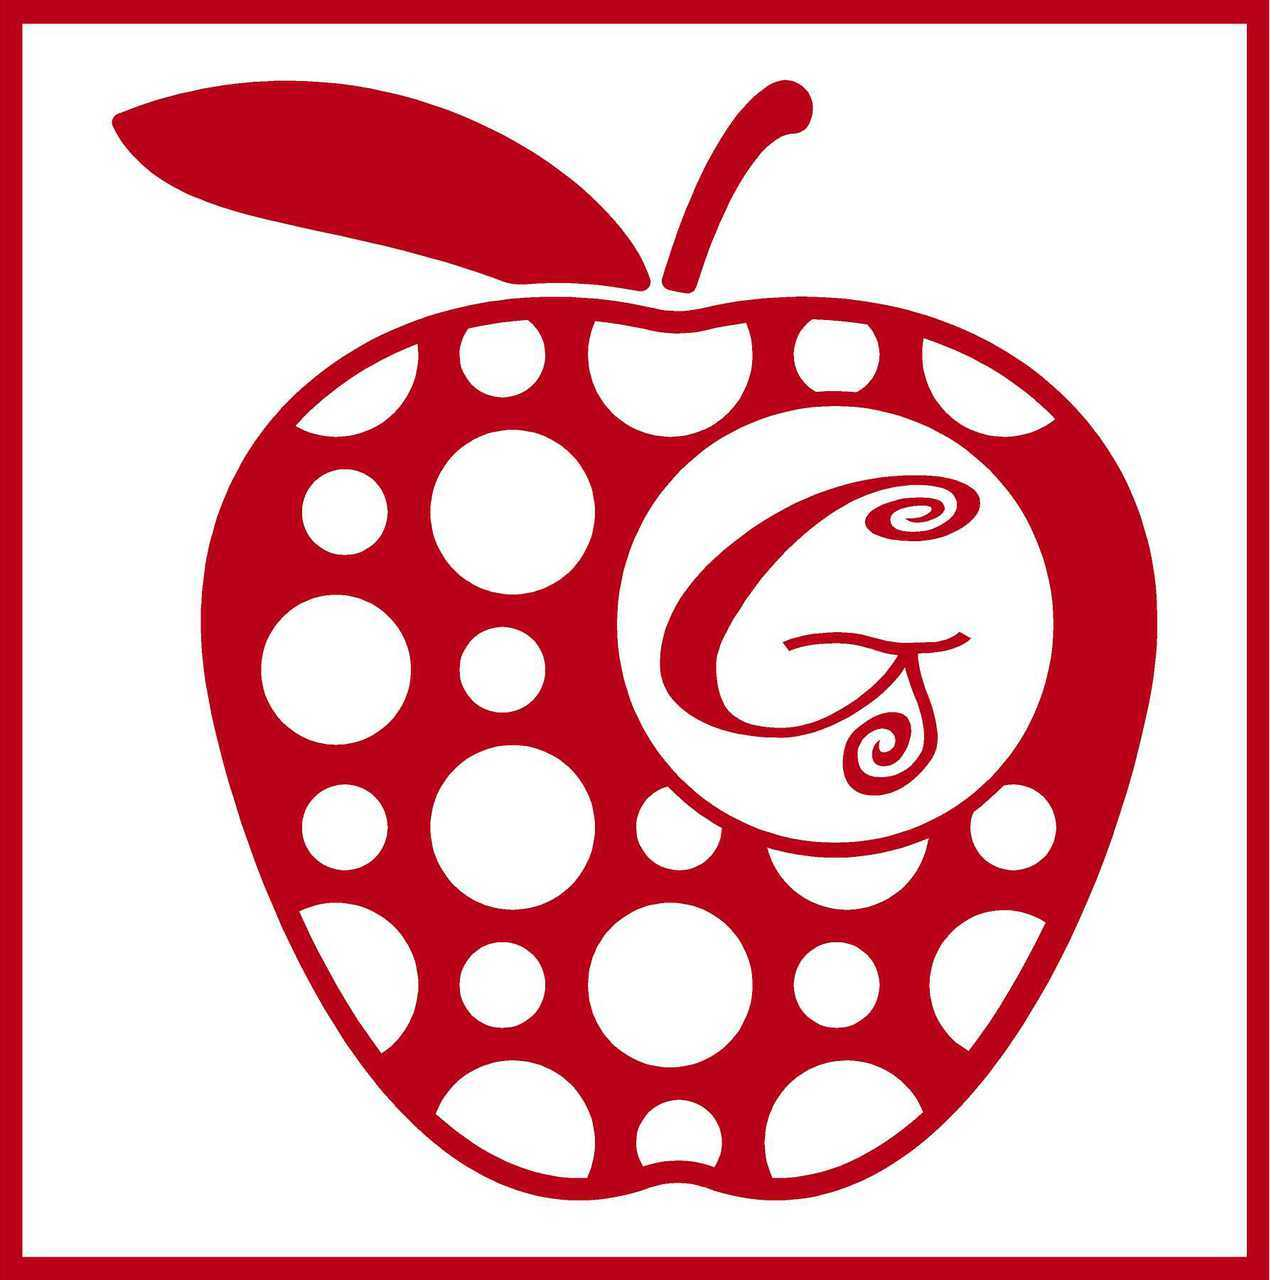 Polka Dot Apple Monogram Vinyl Decal.